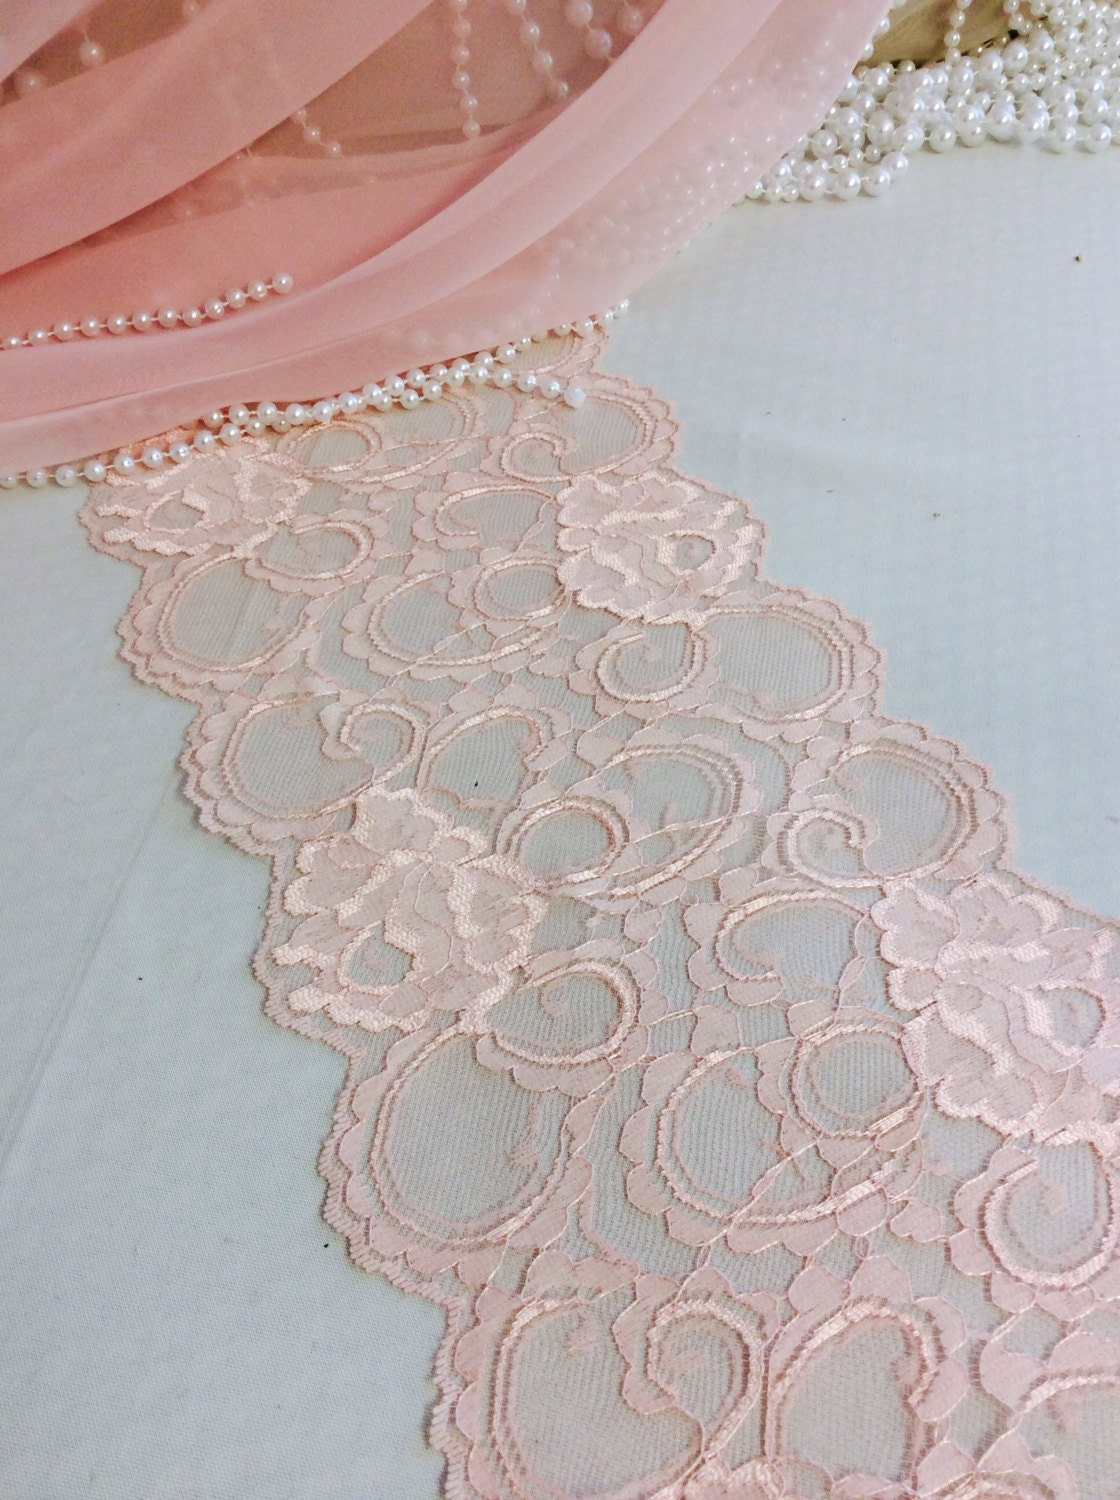 Buy 5 Get 1 Fre 6ft Pink Lace Table Runner Wedding Table